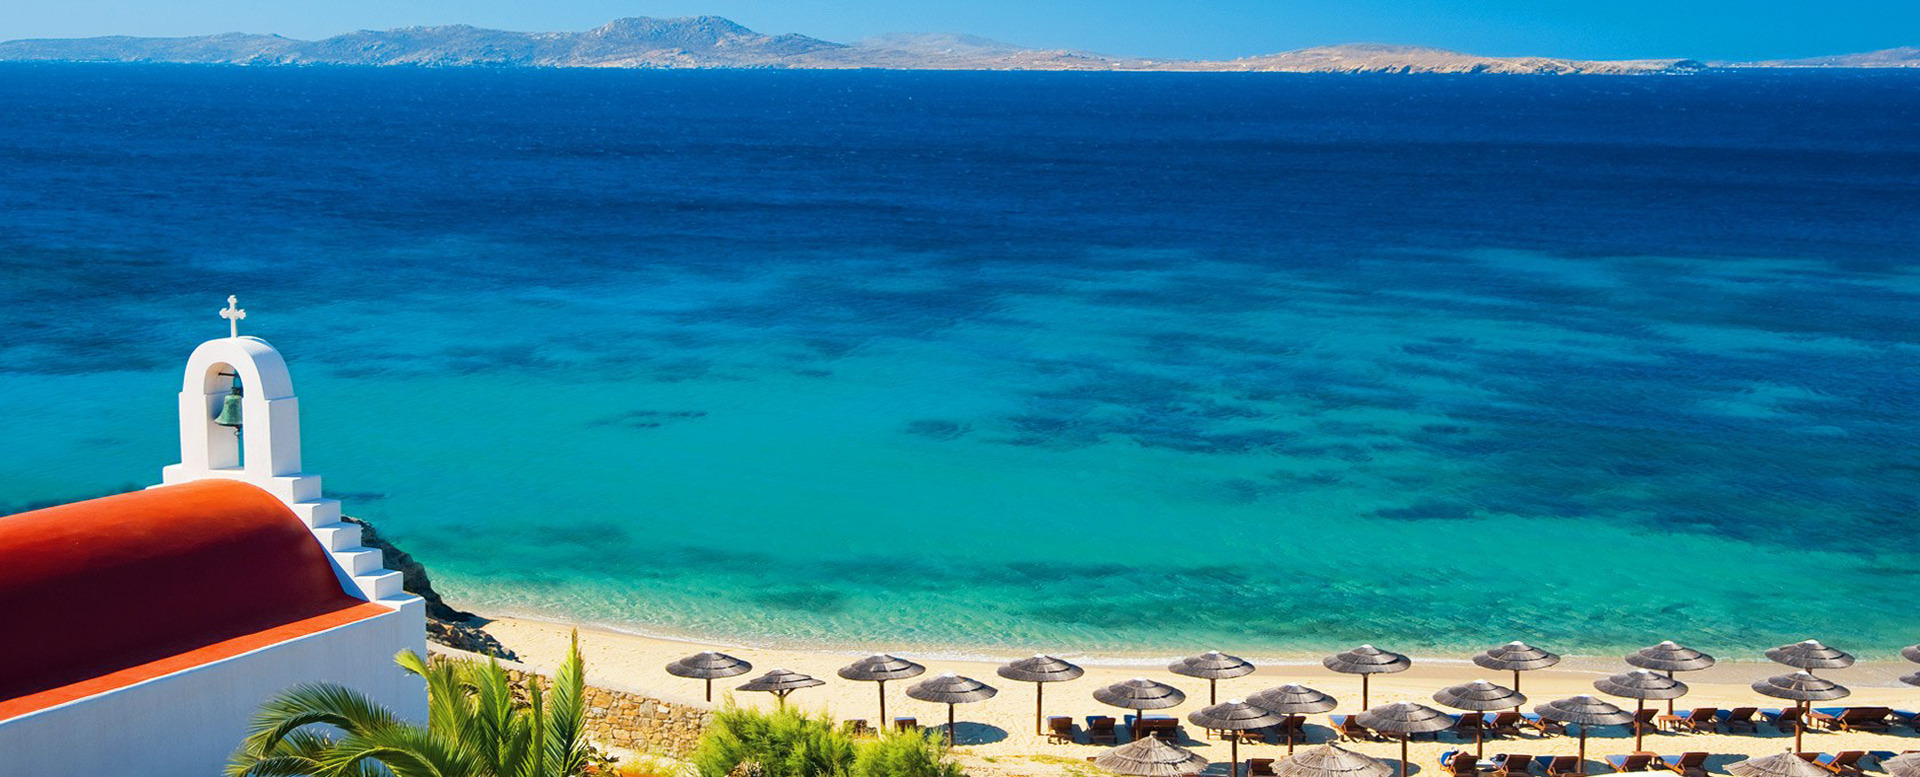 Sejur Charter Mykonos Grecia 8 zile - septembrie 2021